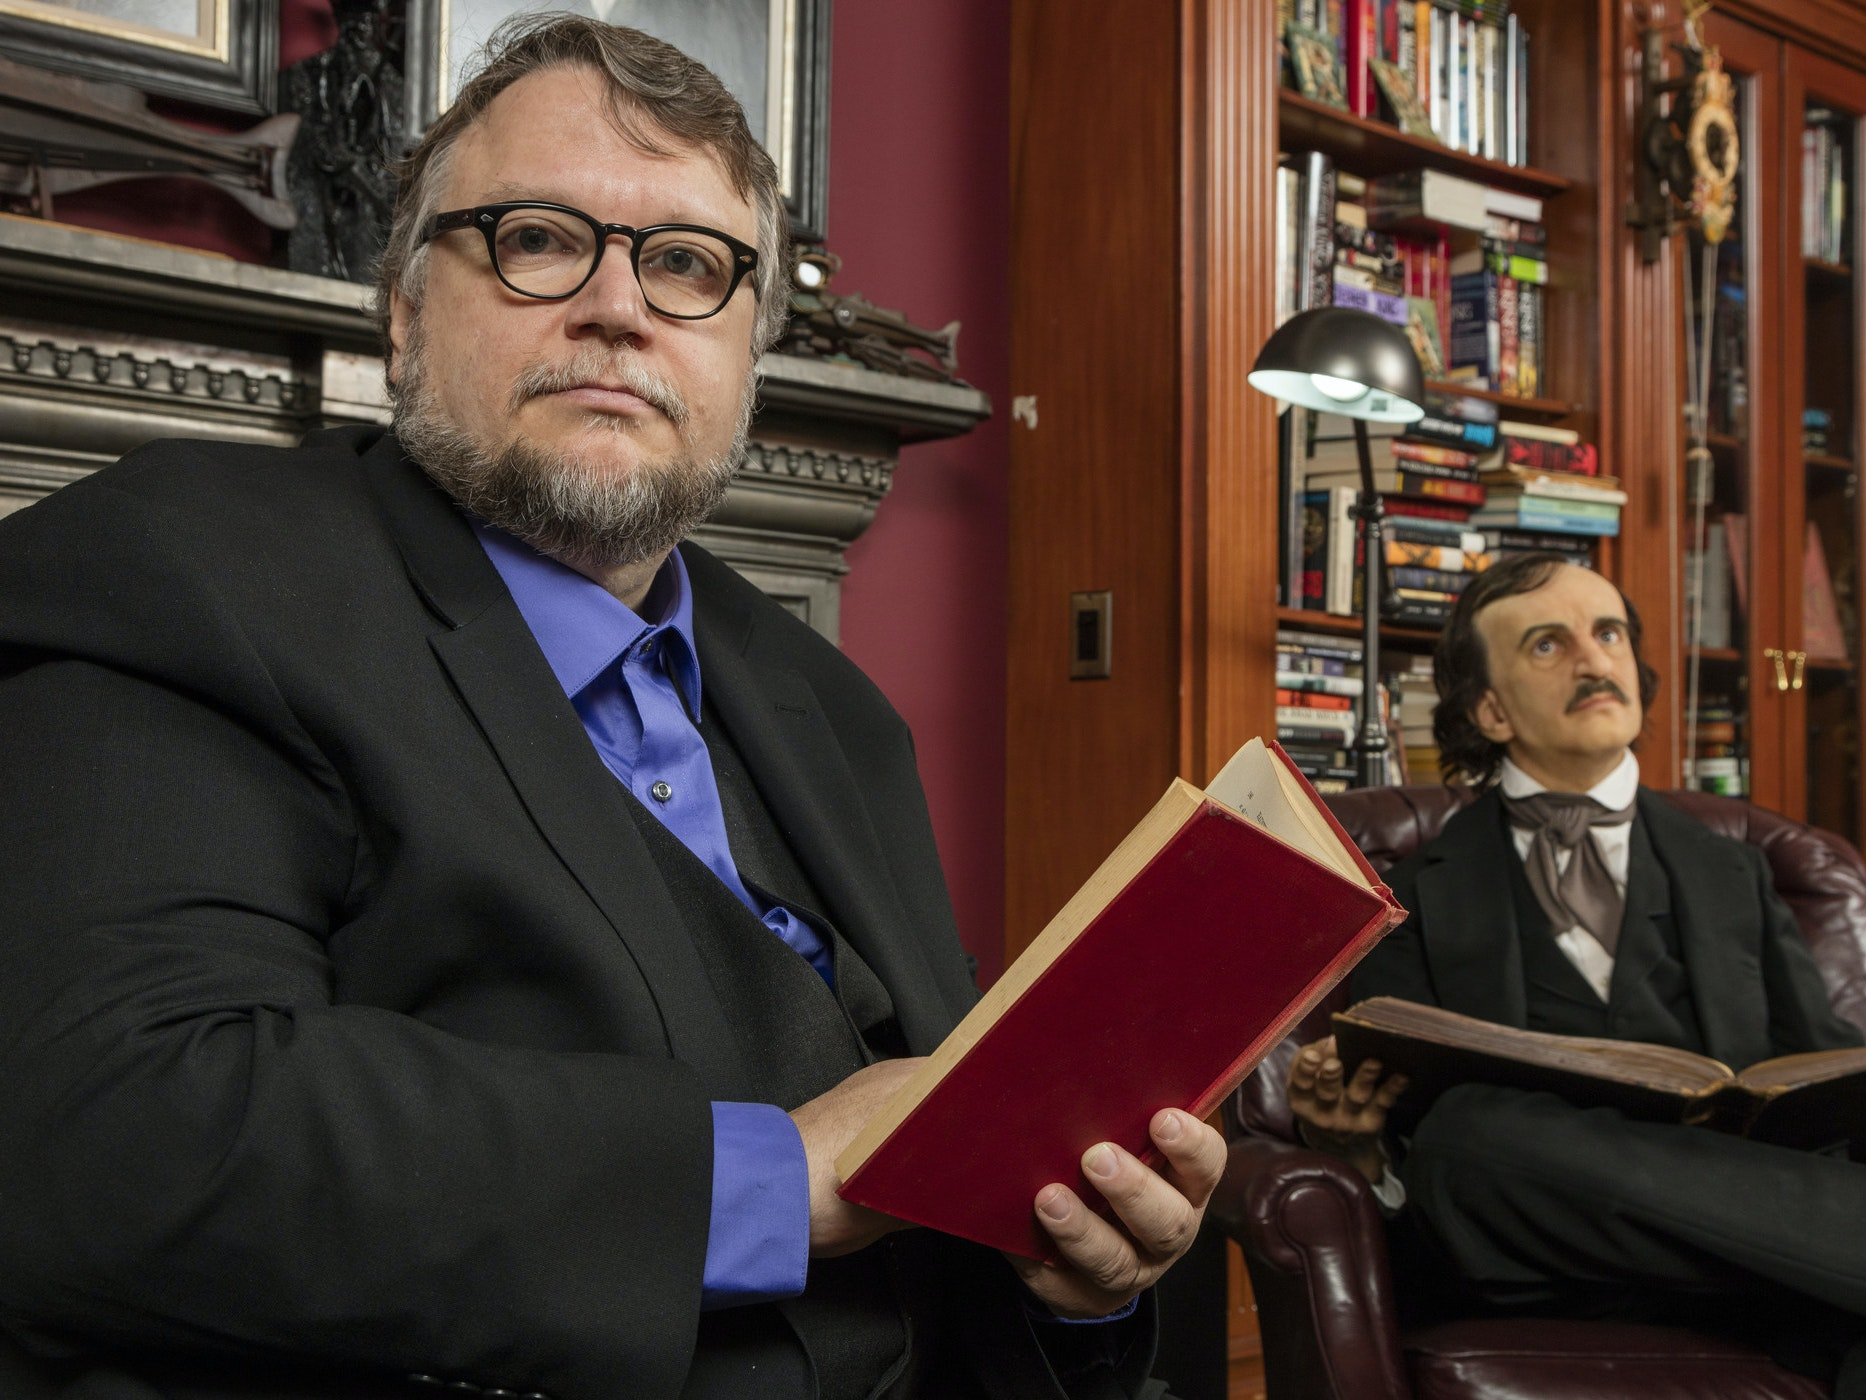 Guillermo Del Toro at the Bleak House